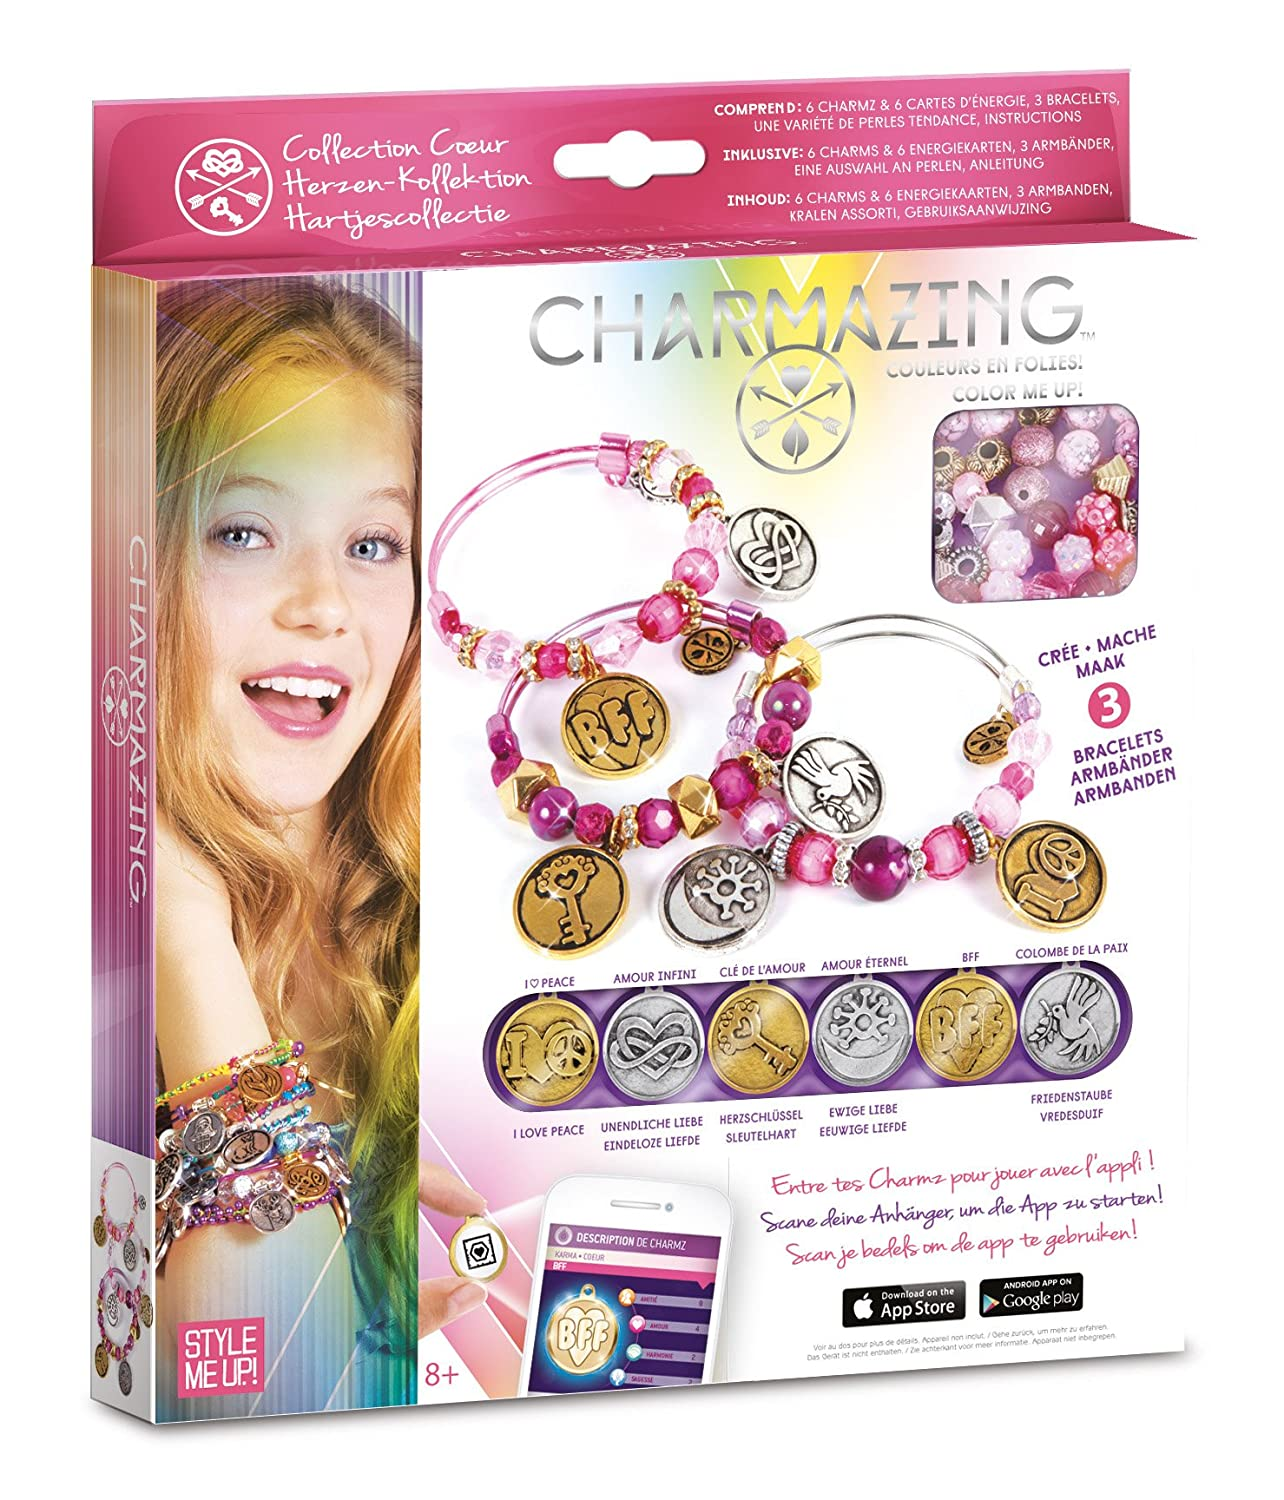 Charmazing Color Me Up Collection Image 1